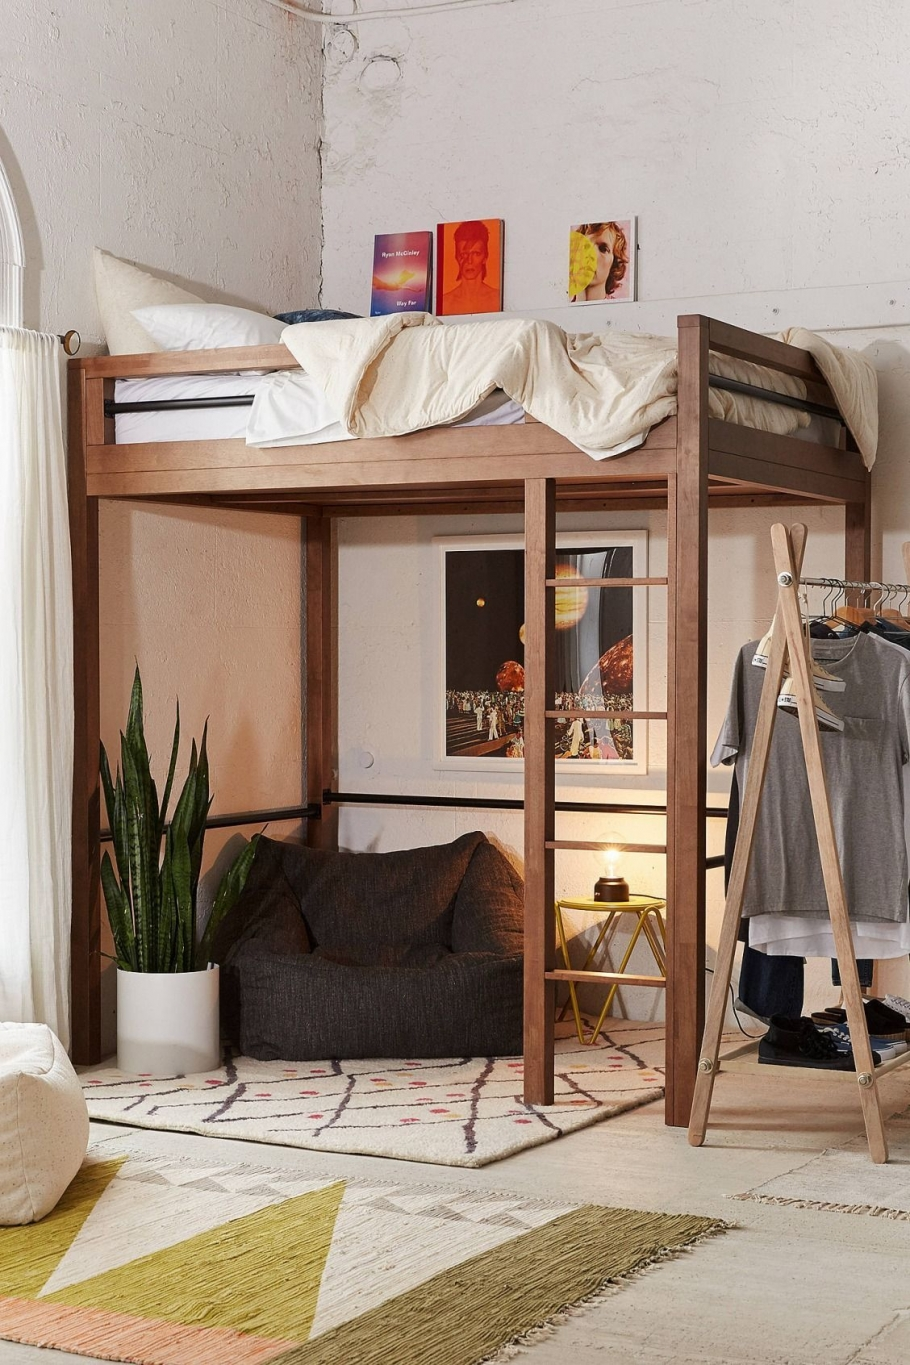 90 top Picks for A Triple Bunk Bed for Kids Rooms-9606